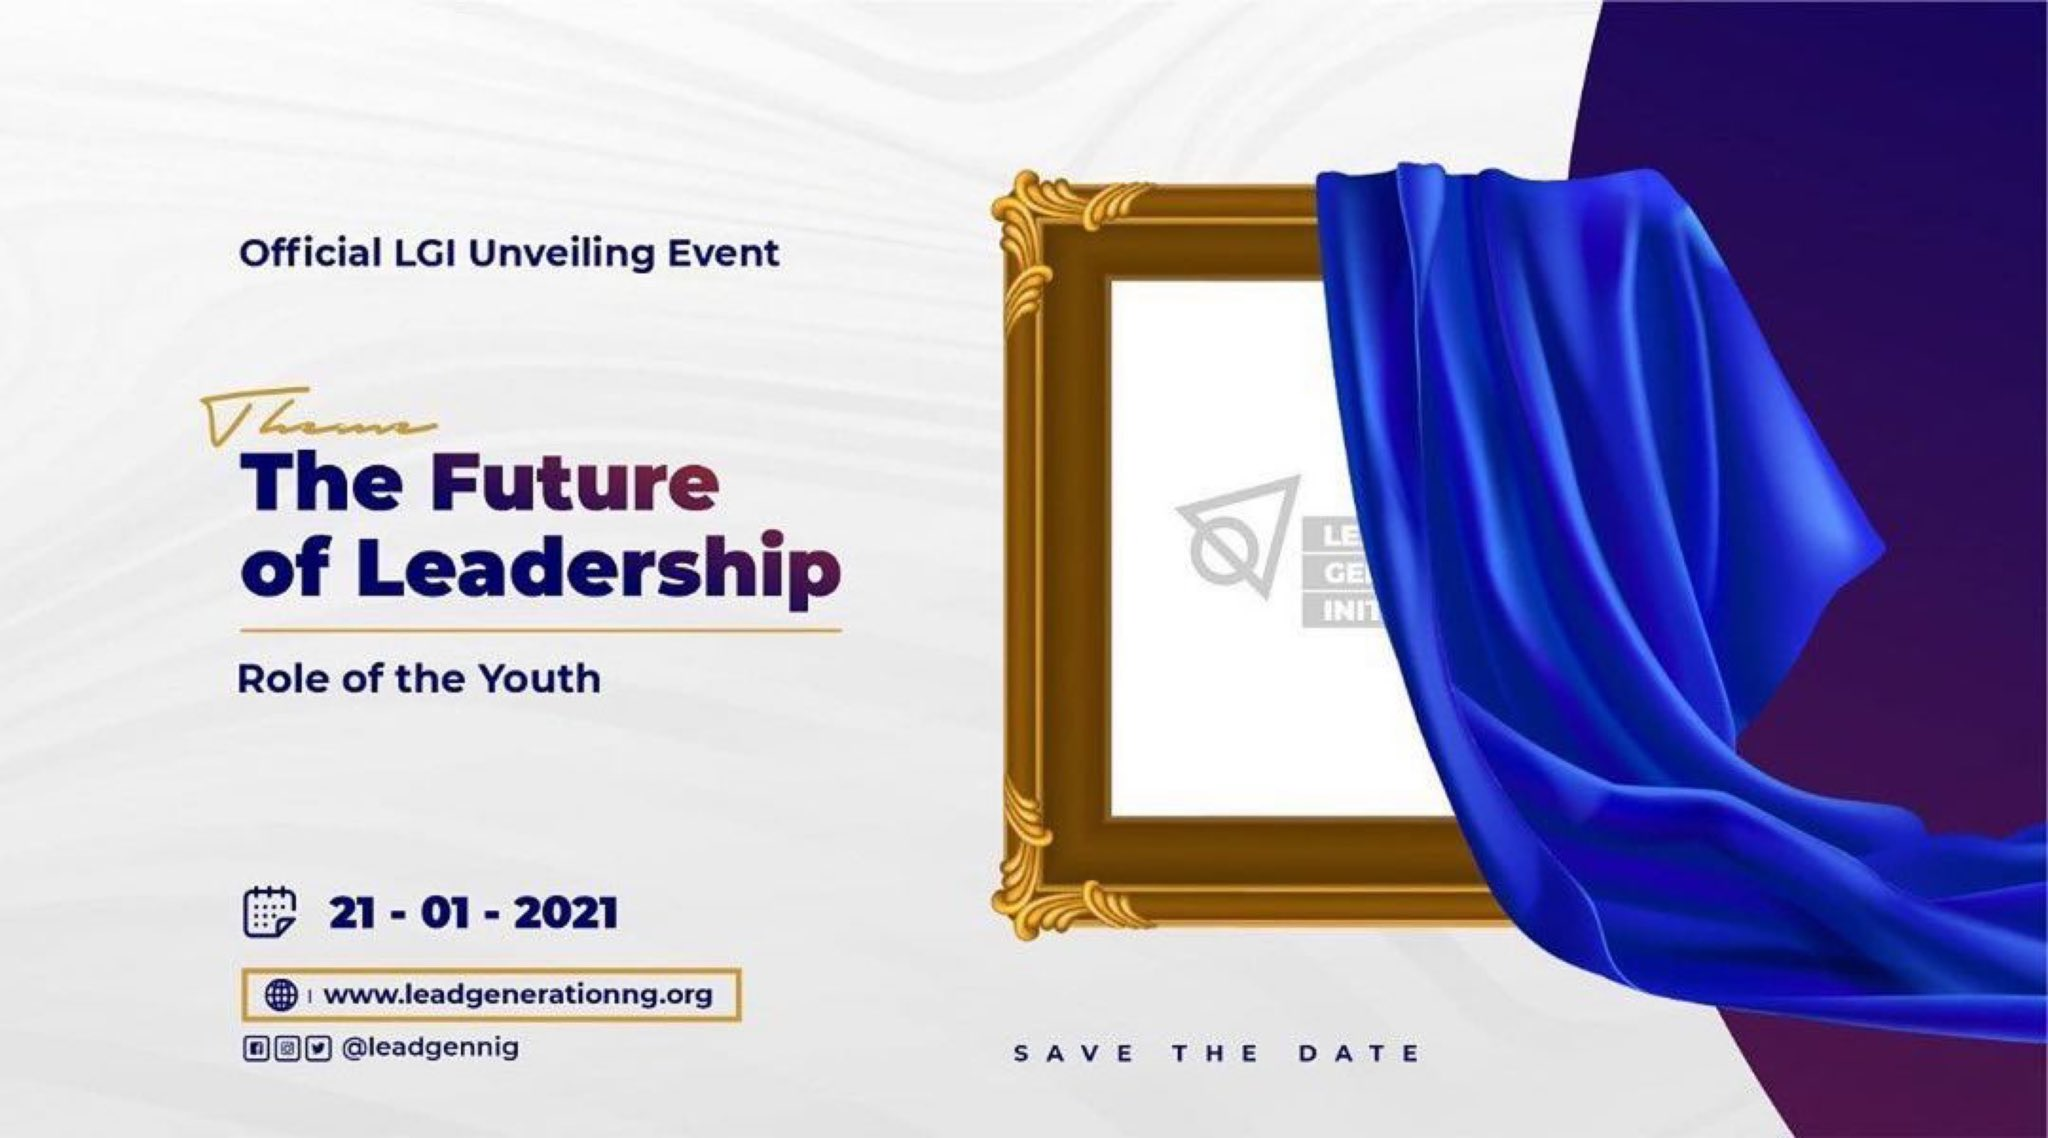 Watch: Highlights from the Lead Generation Initiative's Leadership Symposium 2021